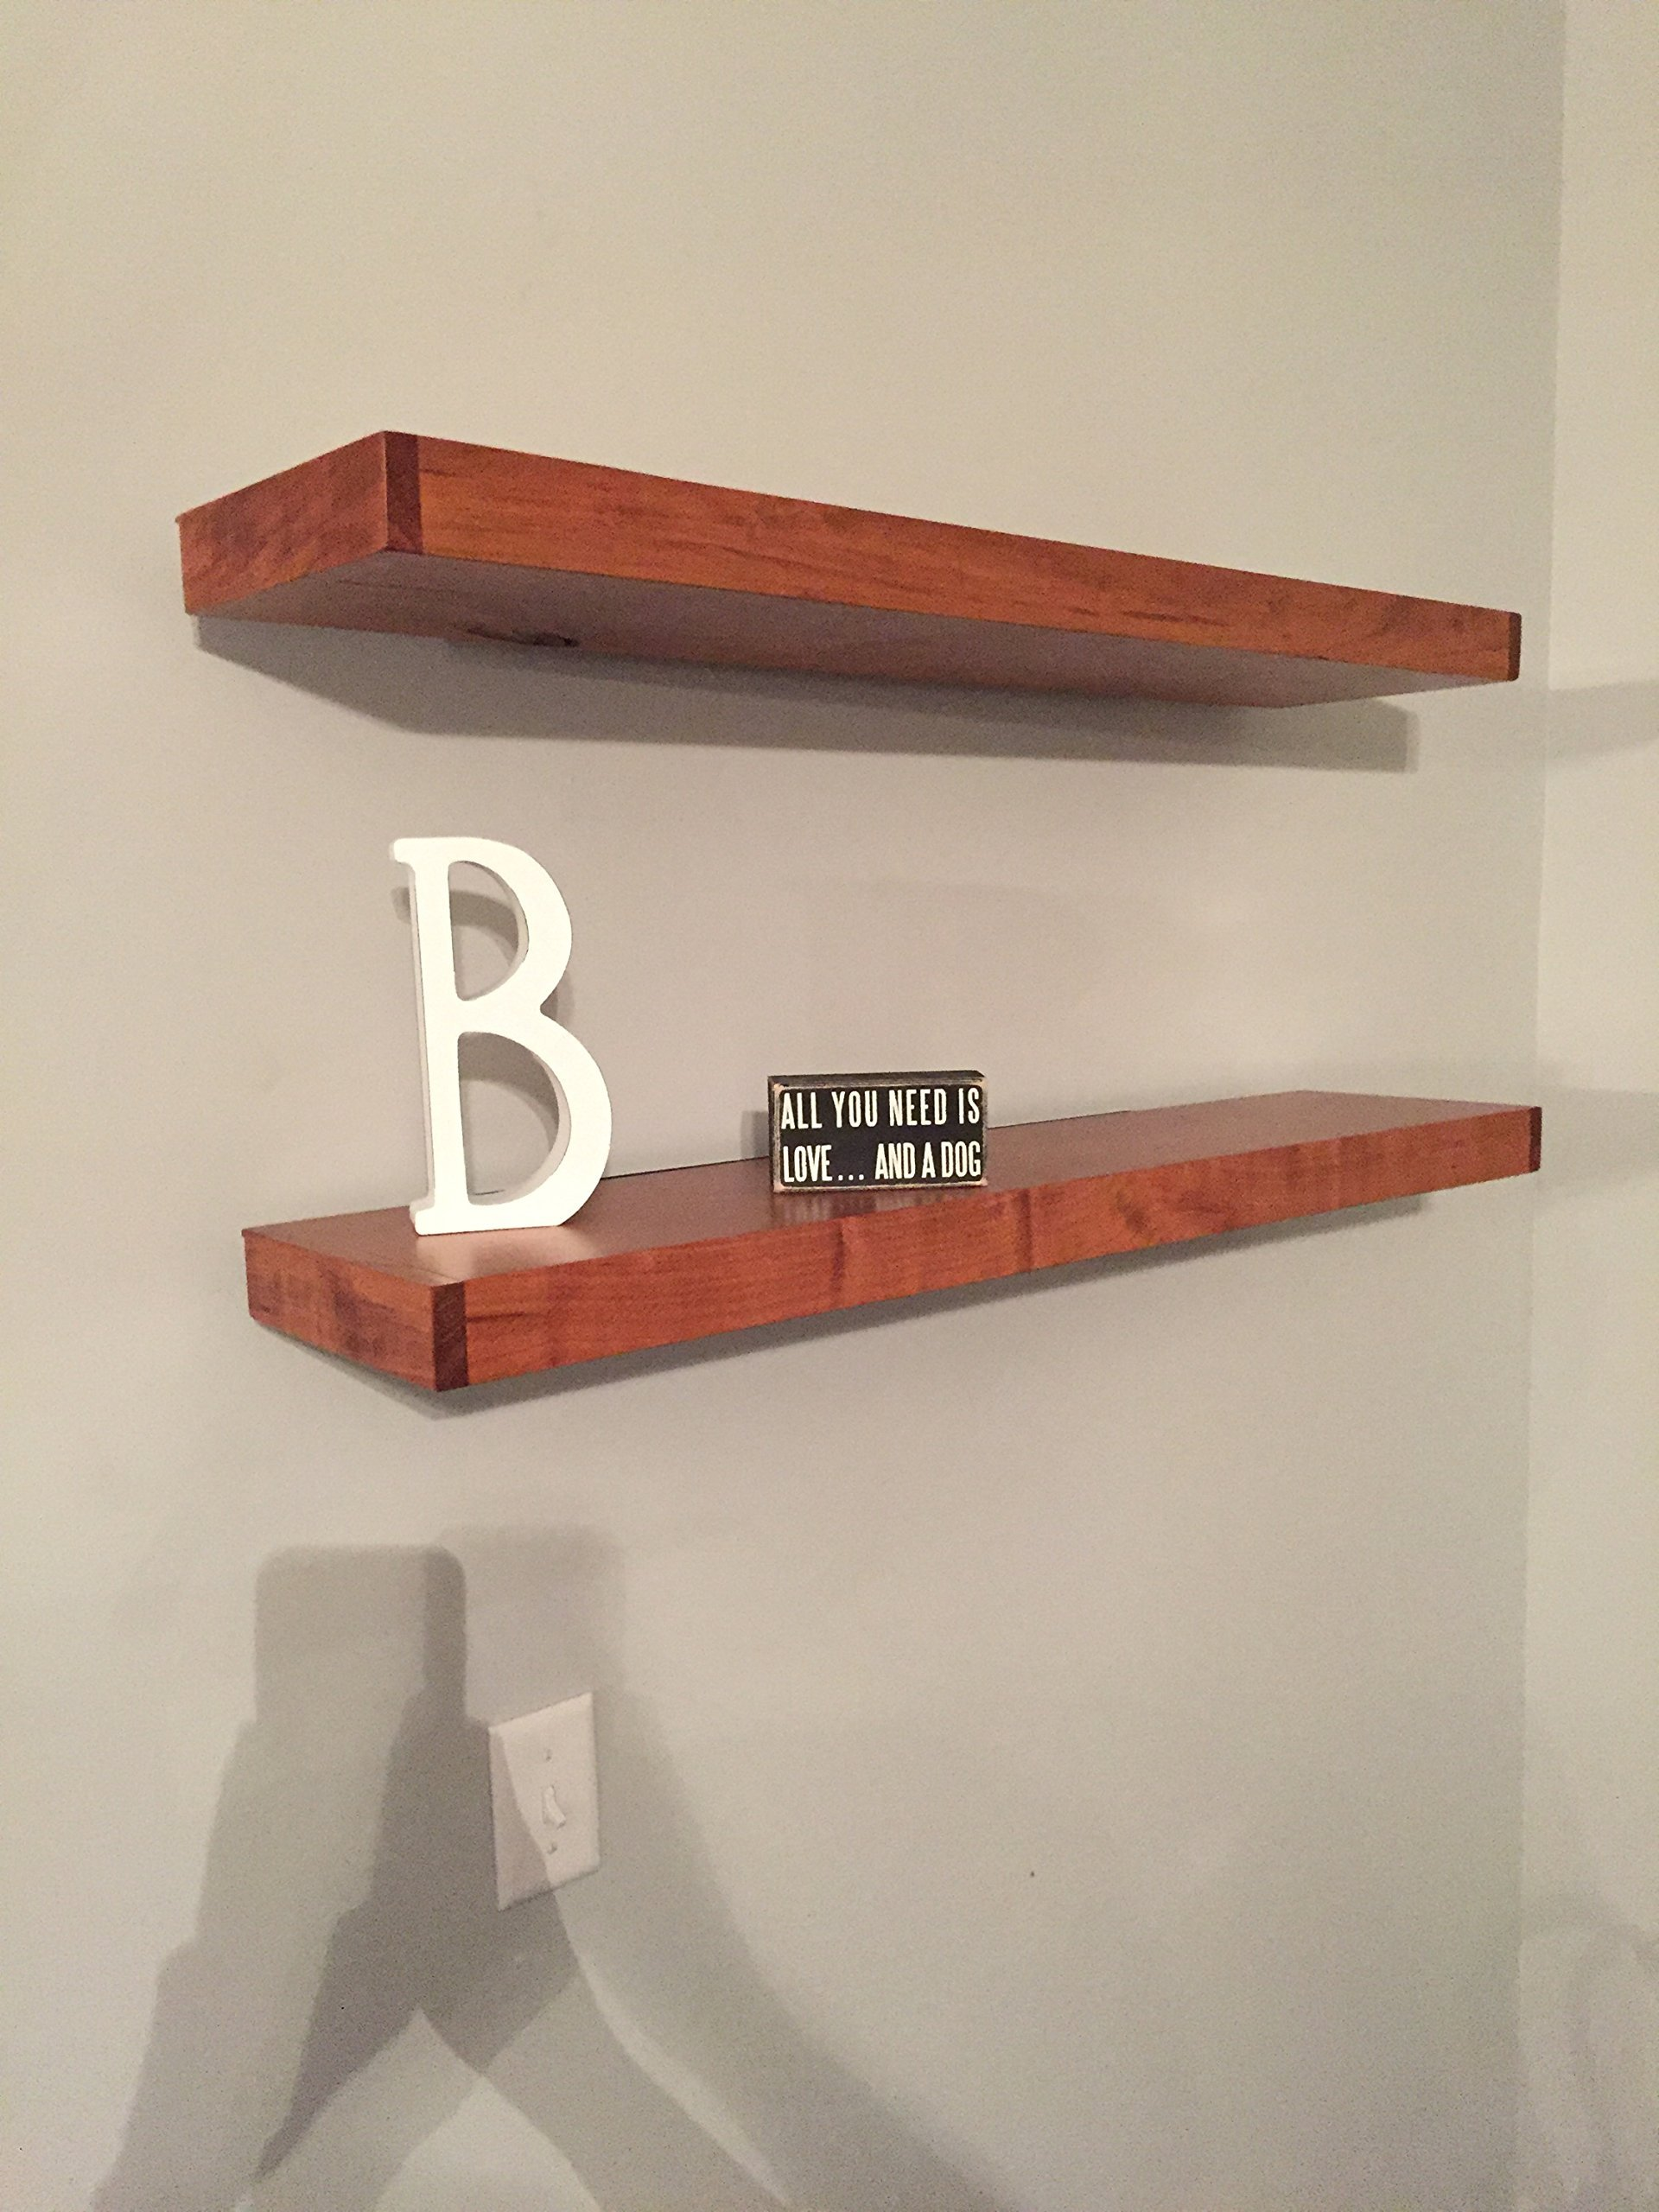 32'' Floating Shelf Heavy Duty Solid Steel Bracket- For 36'' + Shelves MADE IN THE USA! by Walnut Wood Works (Image #3)